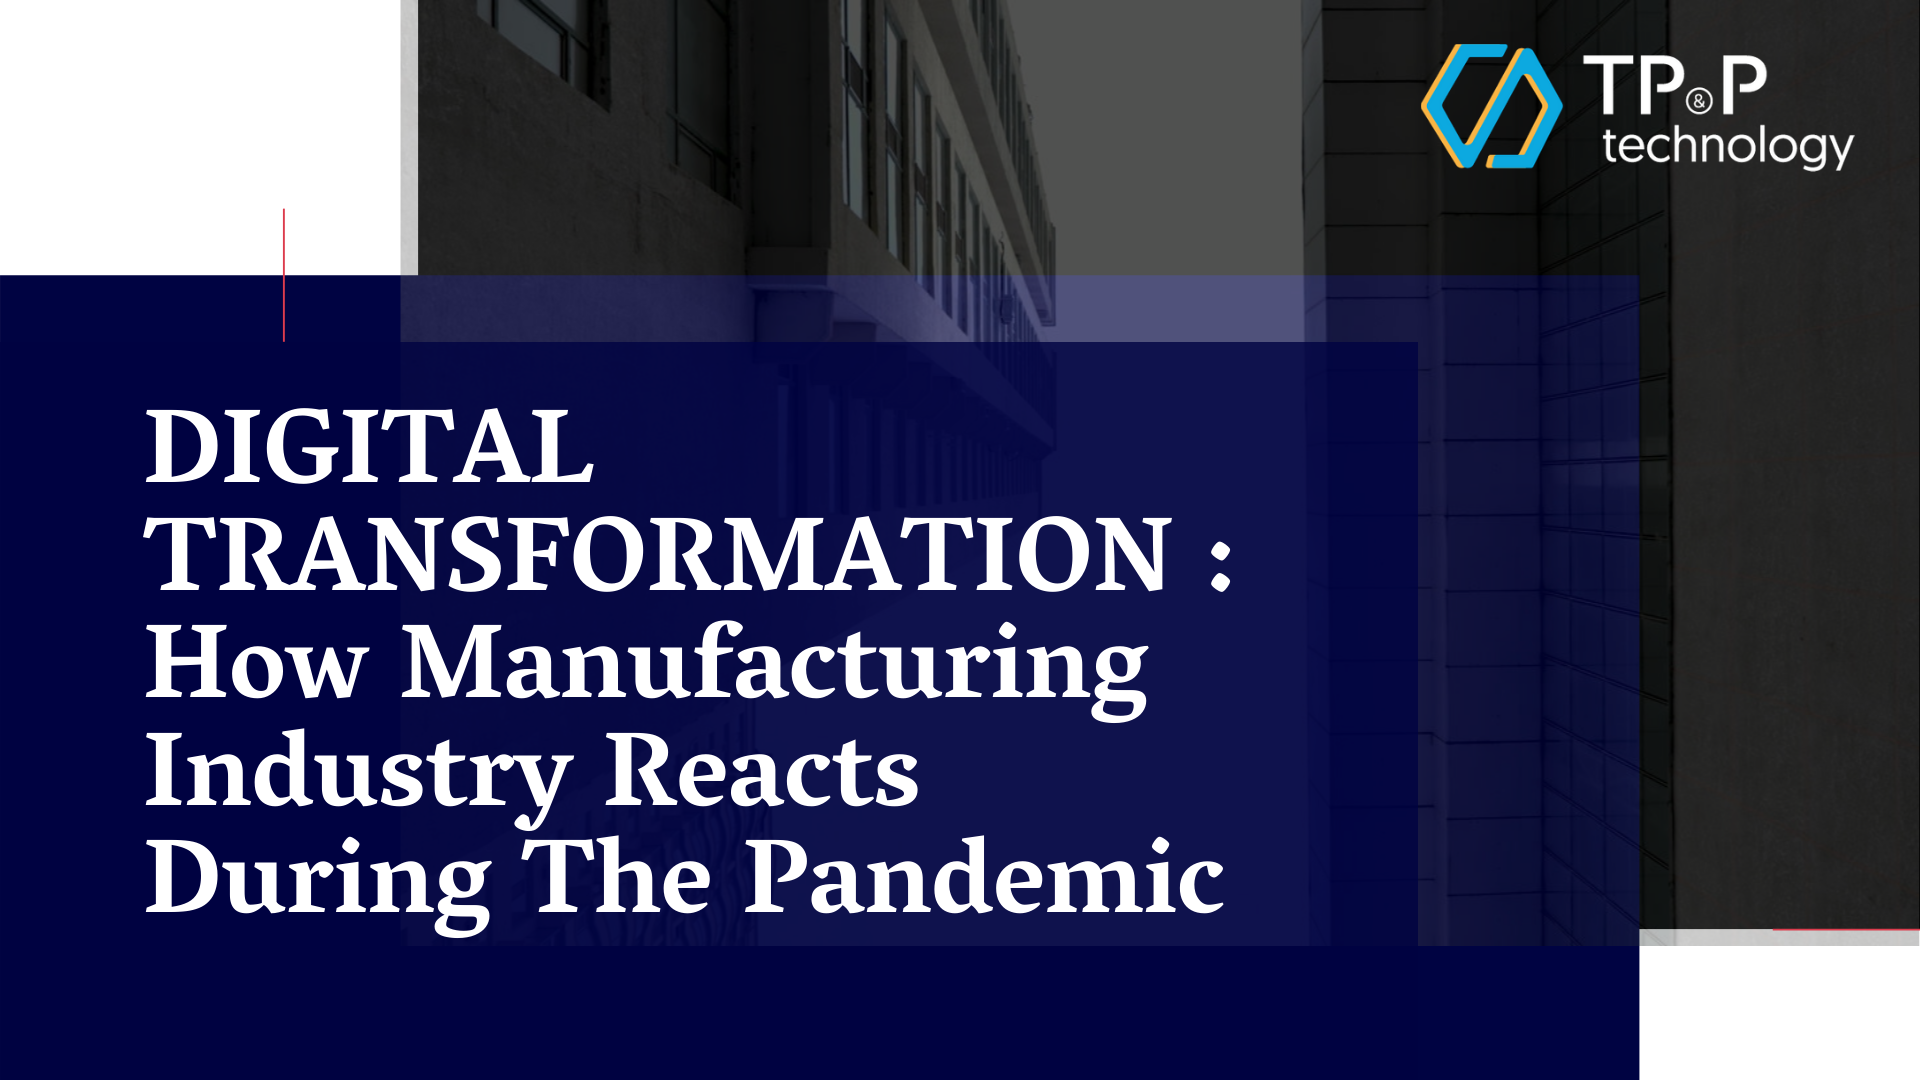 Digital Transformation: How Manufacturing Industry Reacts During The Pandemic